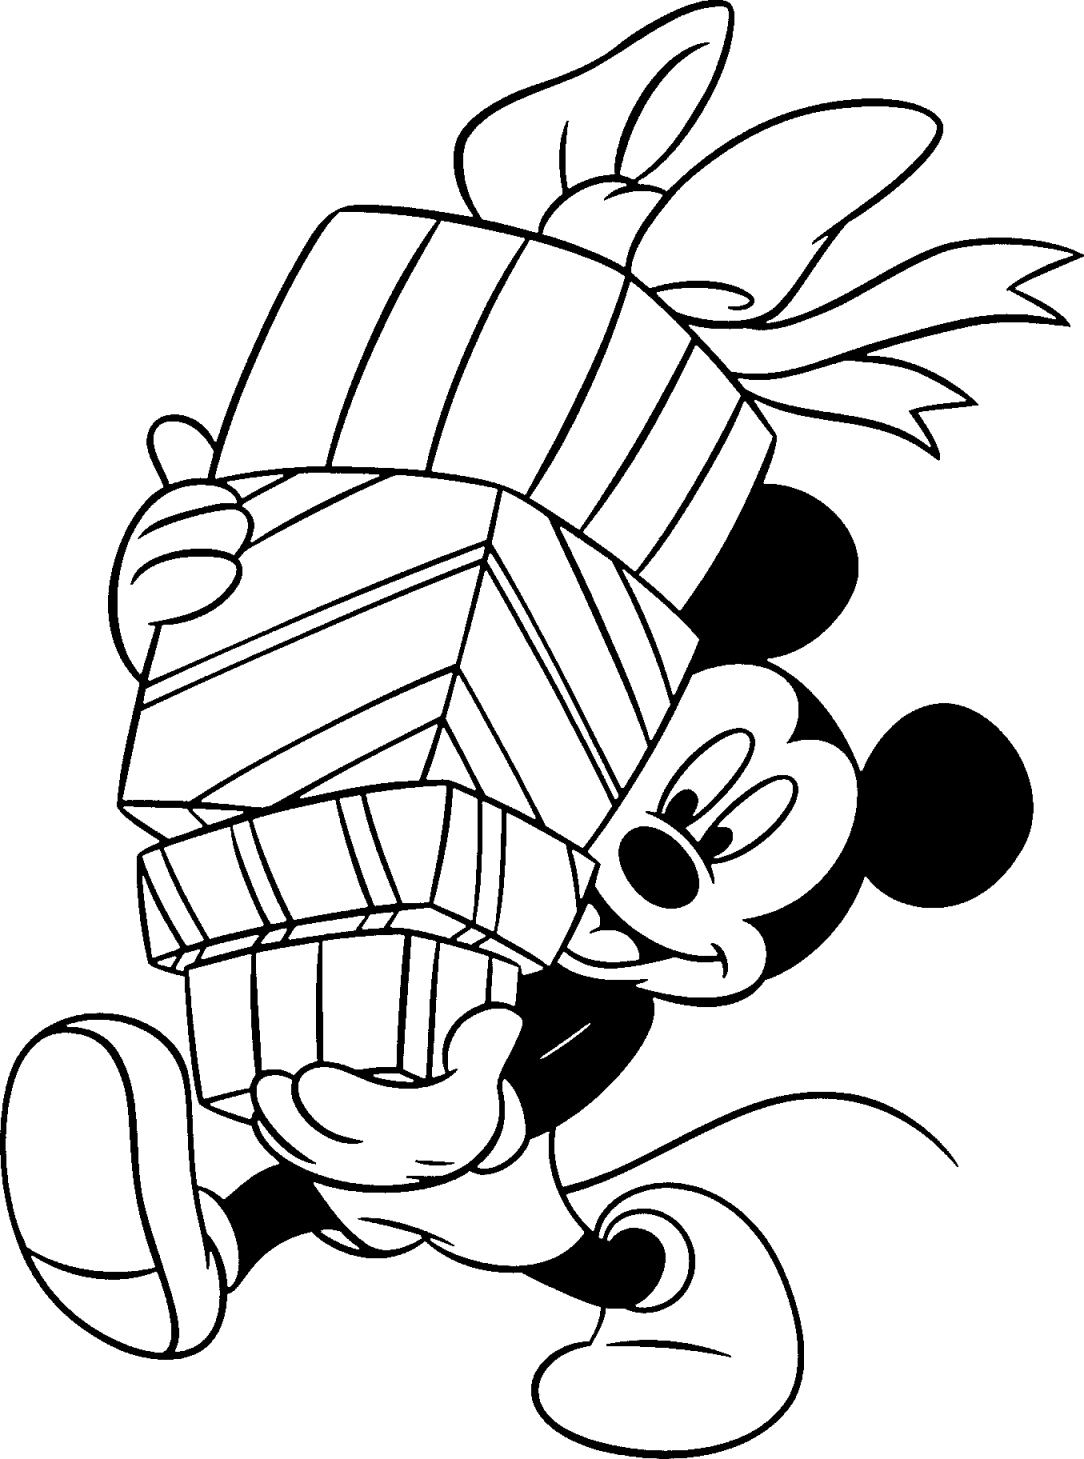 Disney Coloring Pages Birthday : May gt disney coloring pages